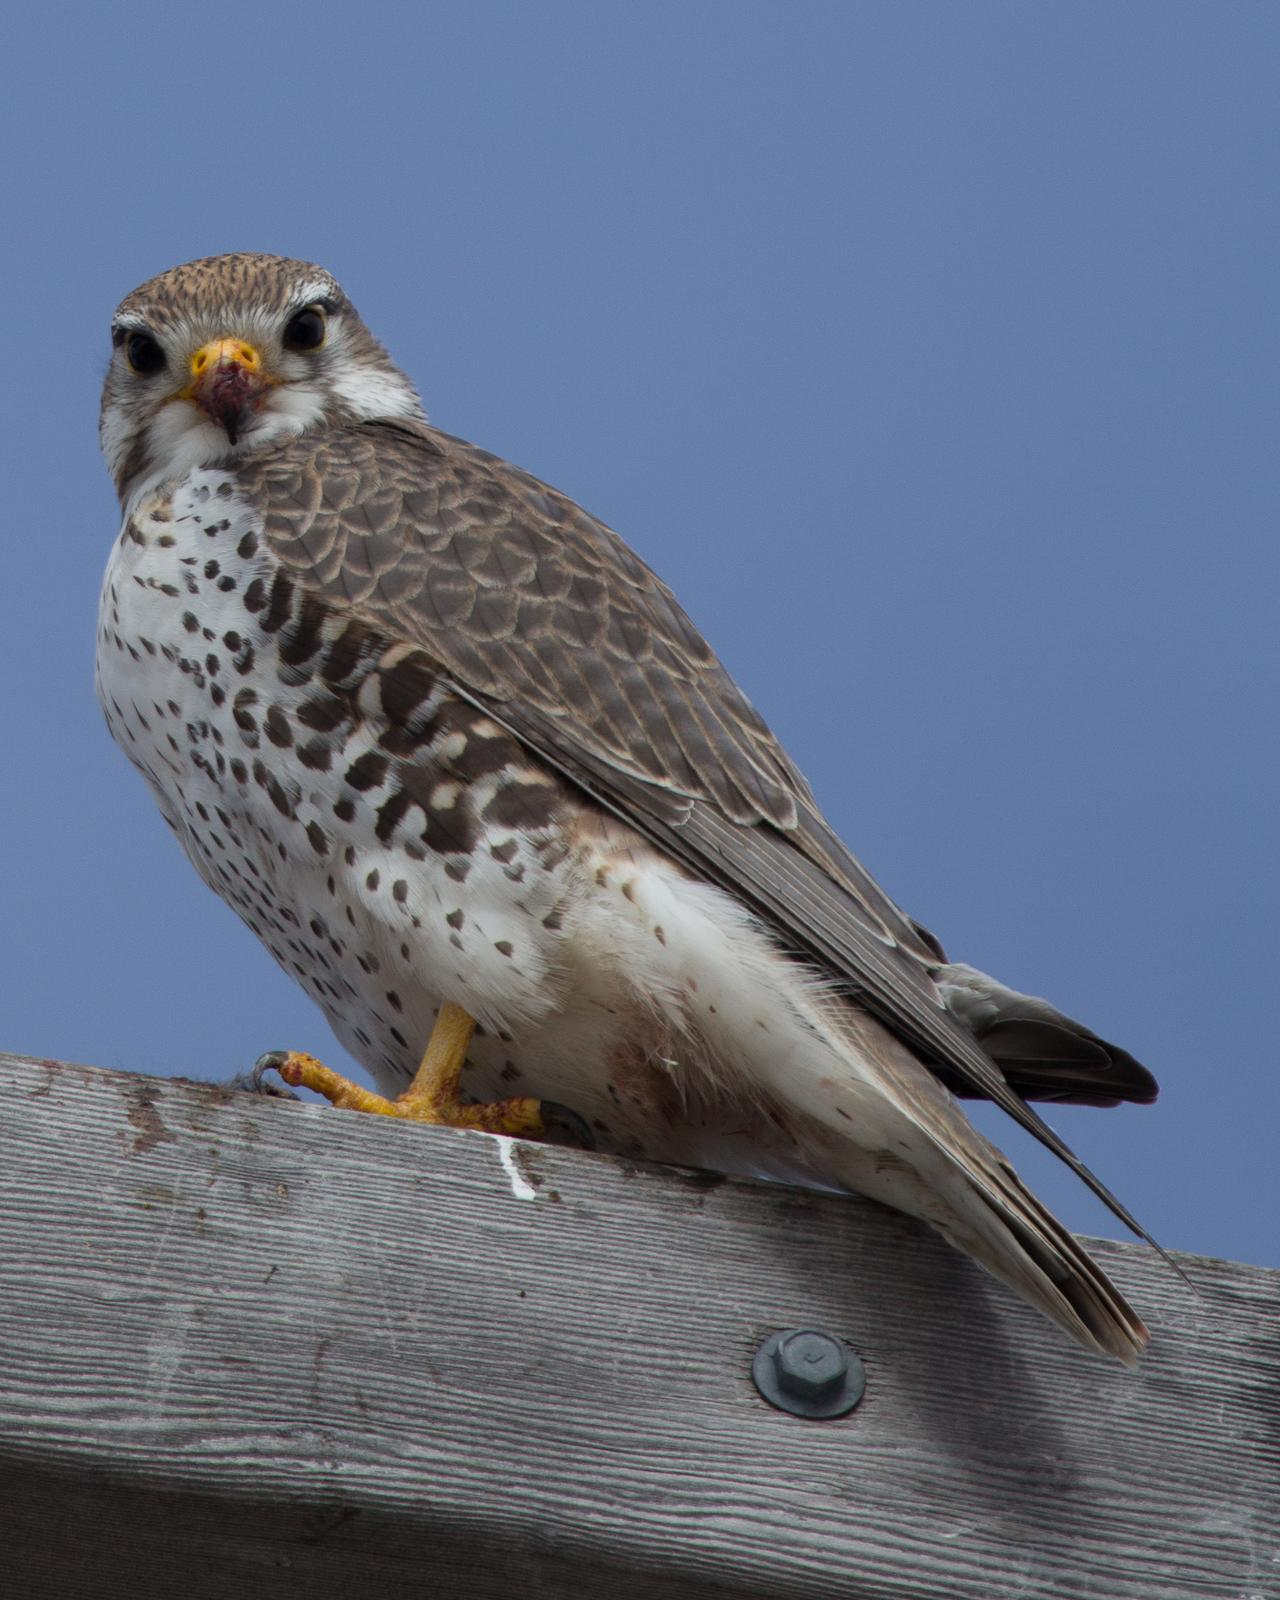 Prairie Falcon Photo by Anita Strawn de Ojeda